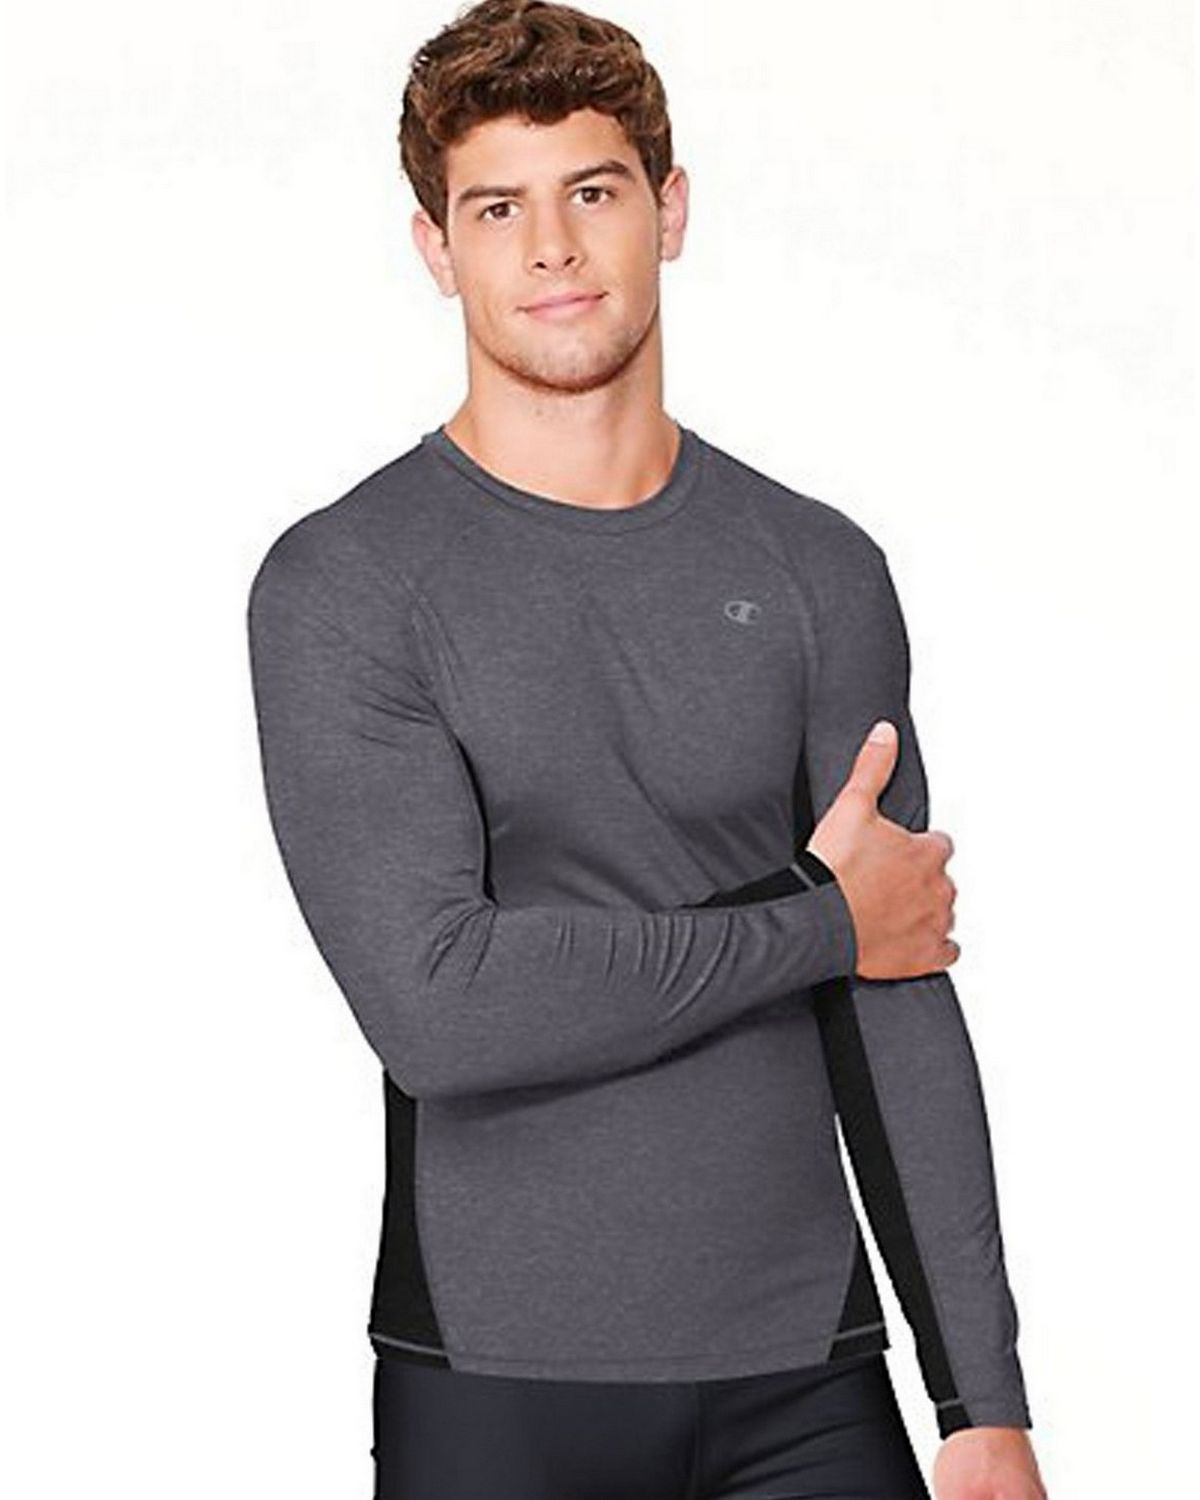 Hanes T6607 Champion Vapor Power Train Long Sleeve Colorblock Mens Tee, Oxford Grey & Granite Heather Size Medium 00078715063351